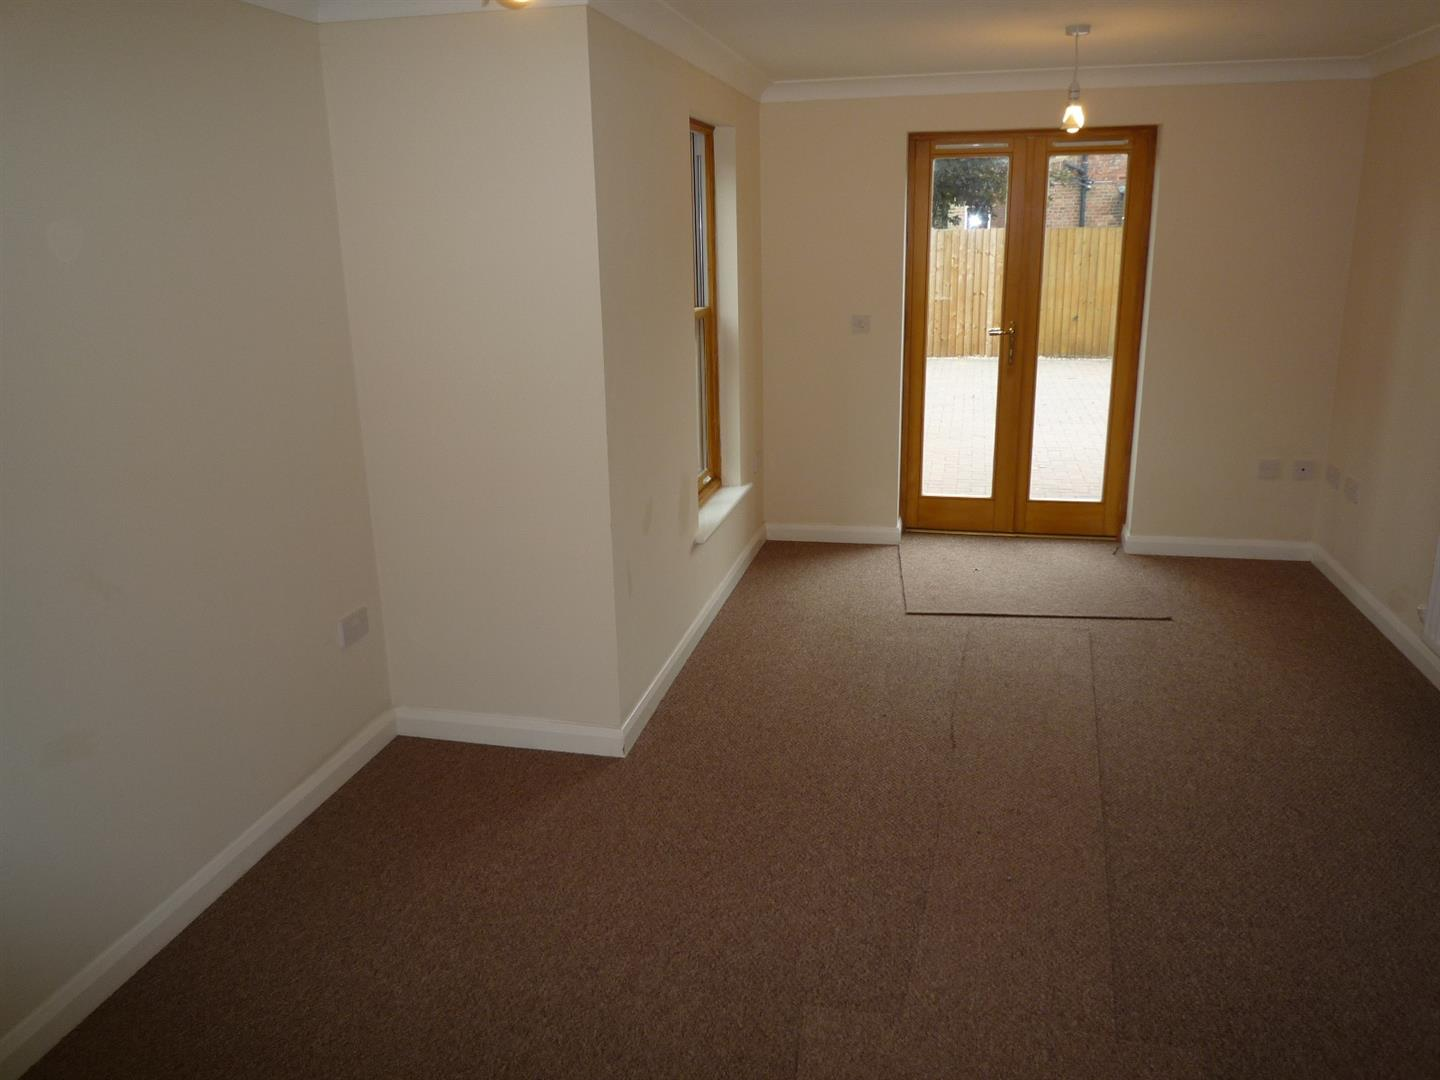 3 bed house to rent in Holbeach Spalding, PE12 7DR 2